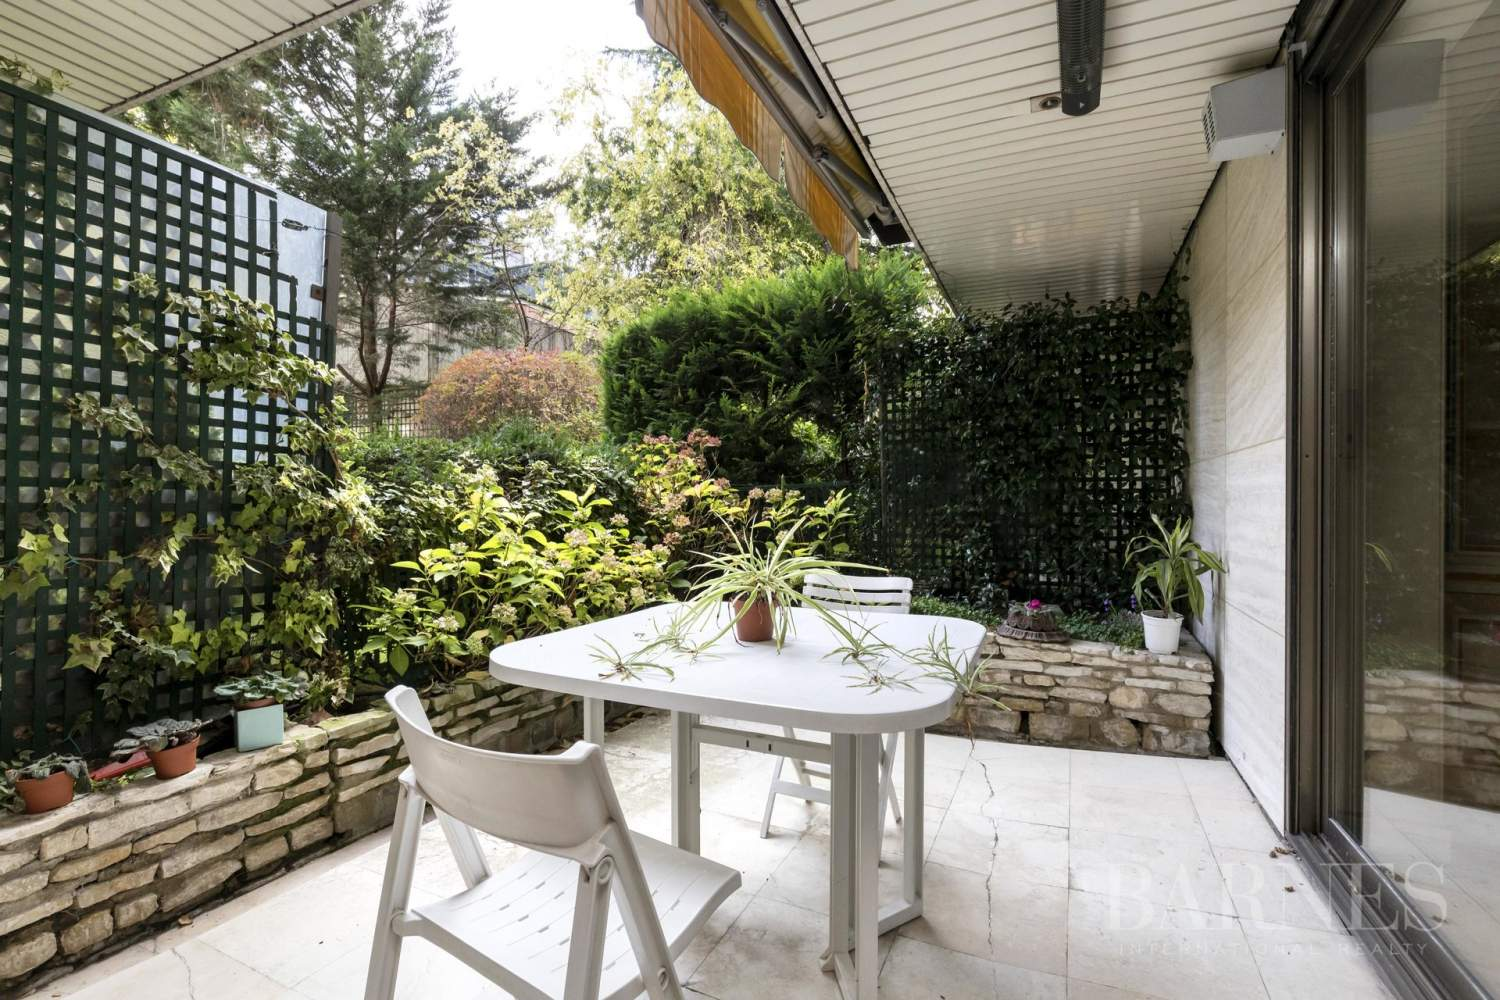 NEUILLY - JARDIN et TERRASSE - 2/3 CHAMBRES - PARKING picture 4